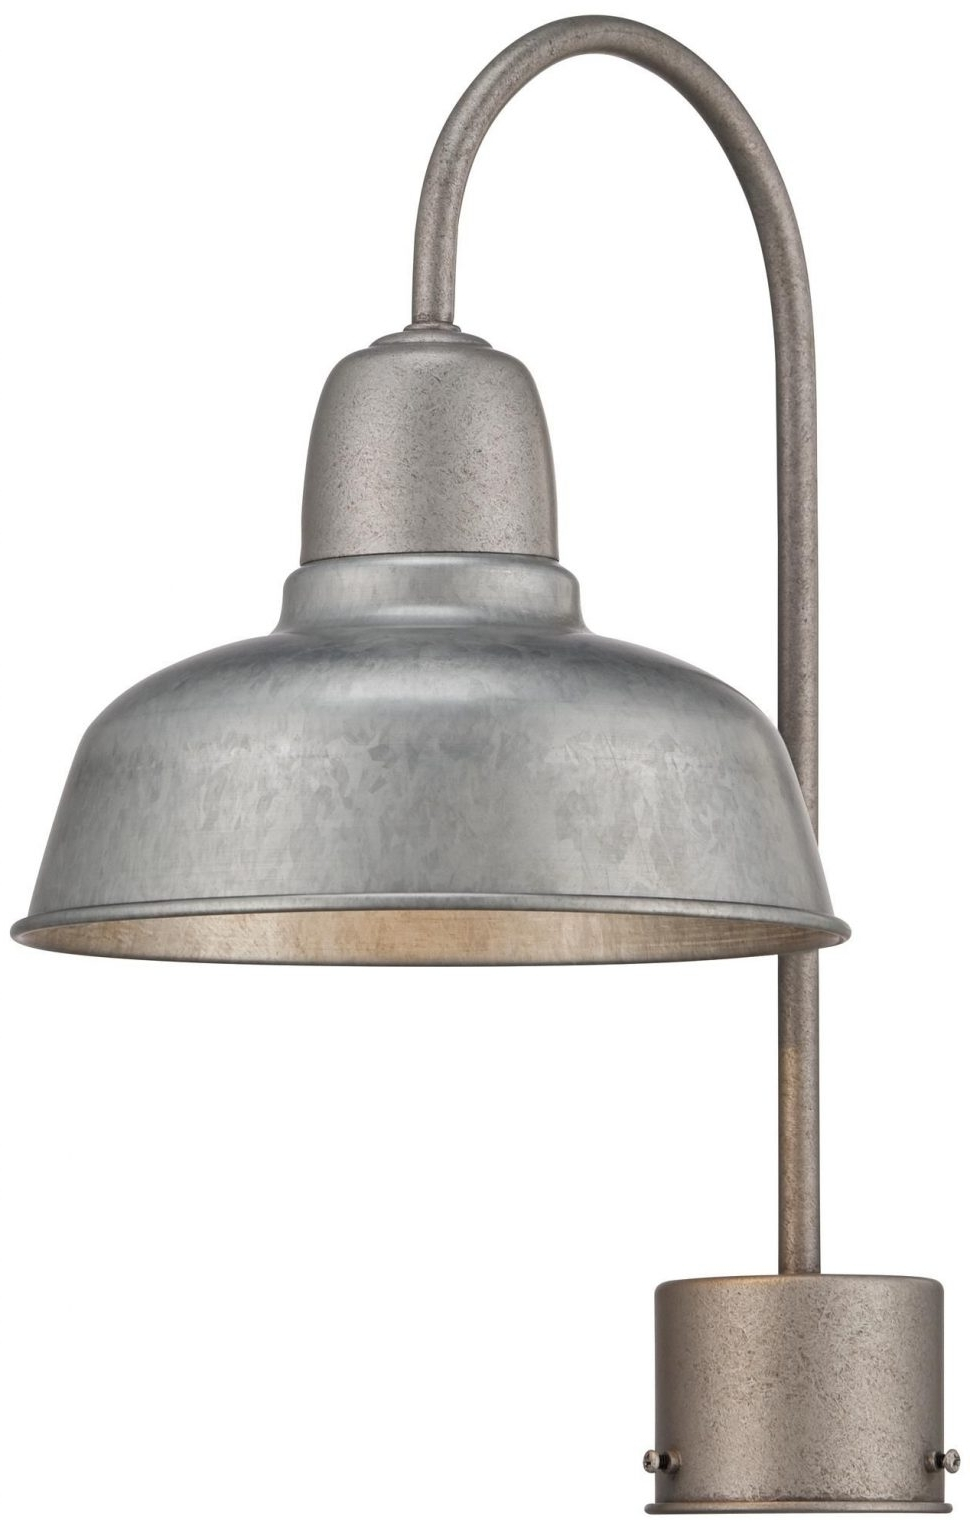 Outdoor Patio Electric Lanterns With Most Up To Date Lamp : Patio Lamps Chesapeake Light Outdoor Wall Tz Loading Zoom (Gallery 13 of 20)